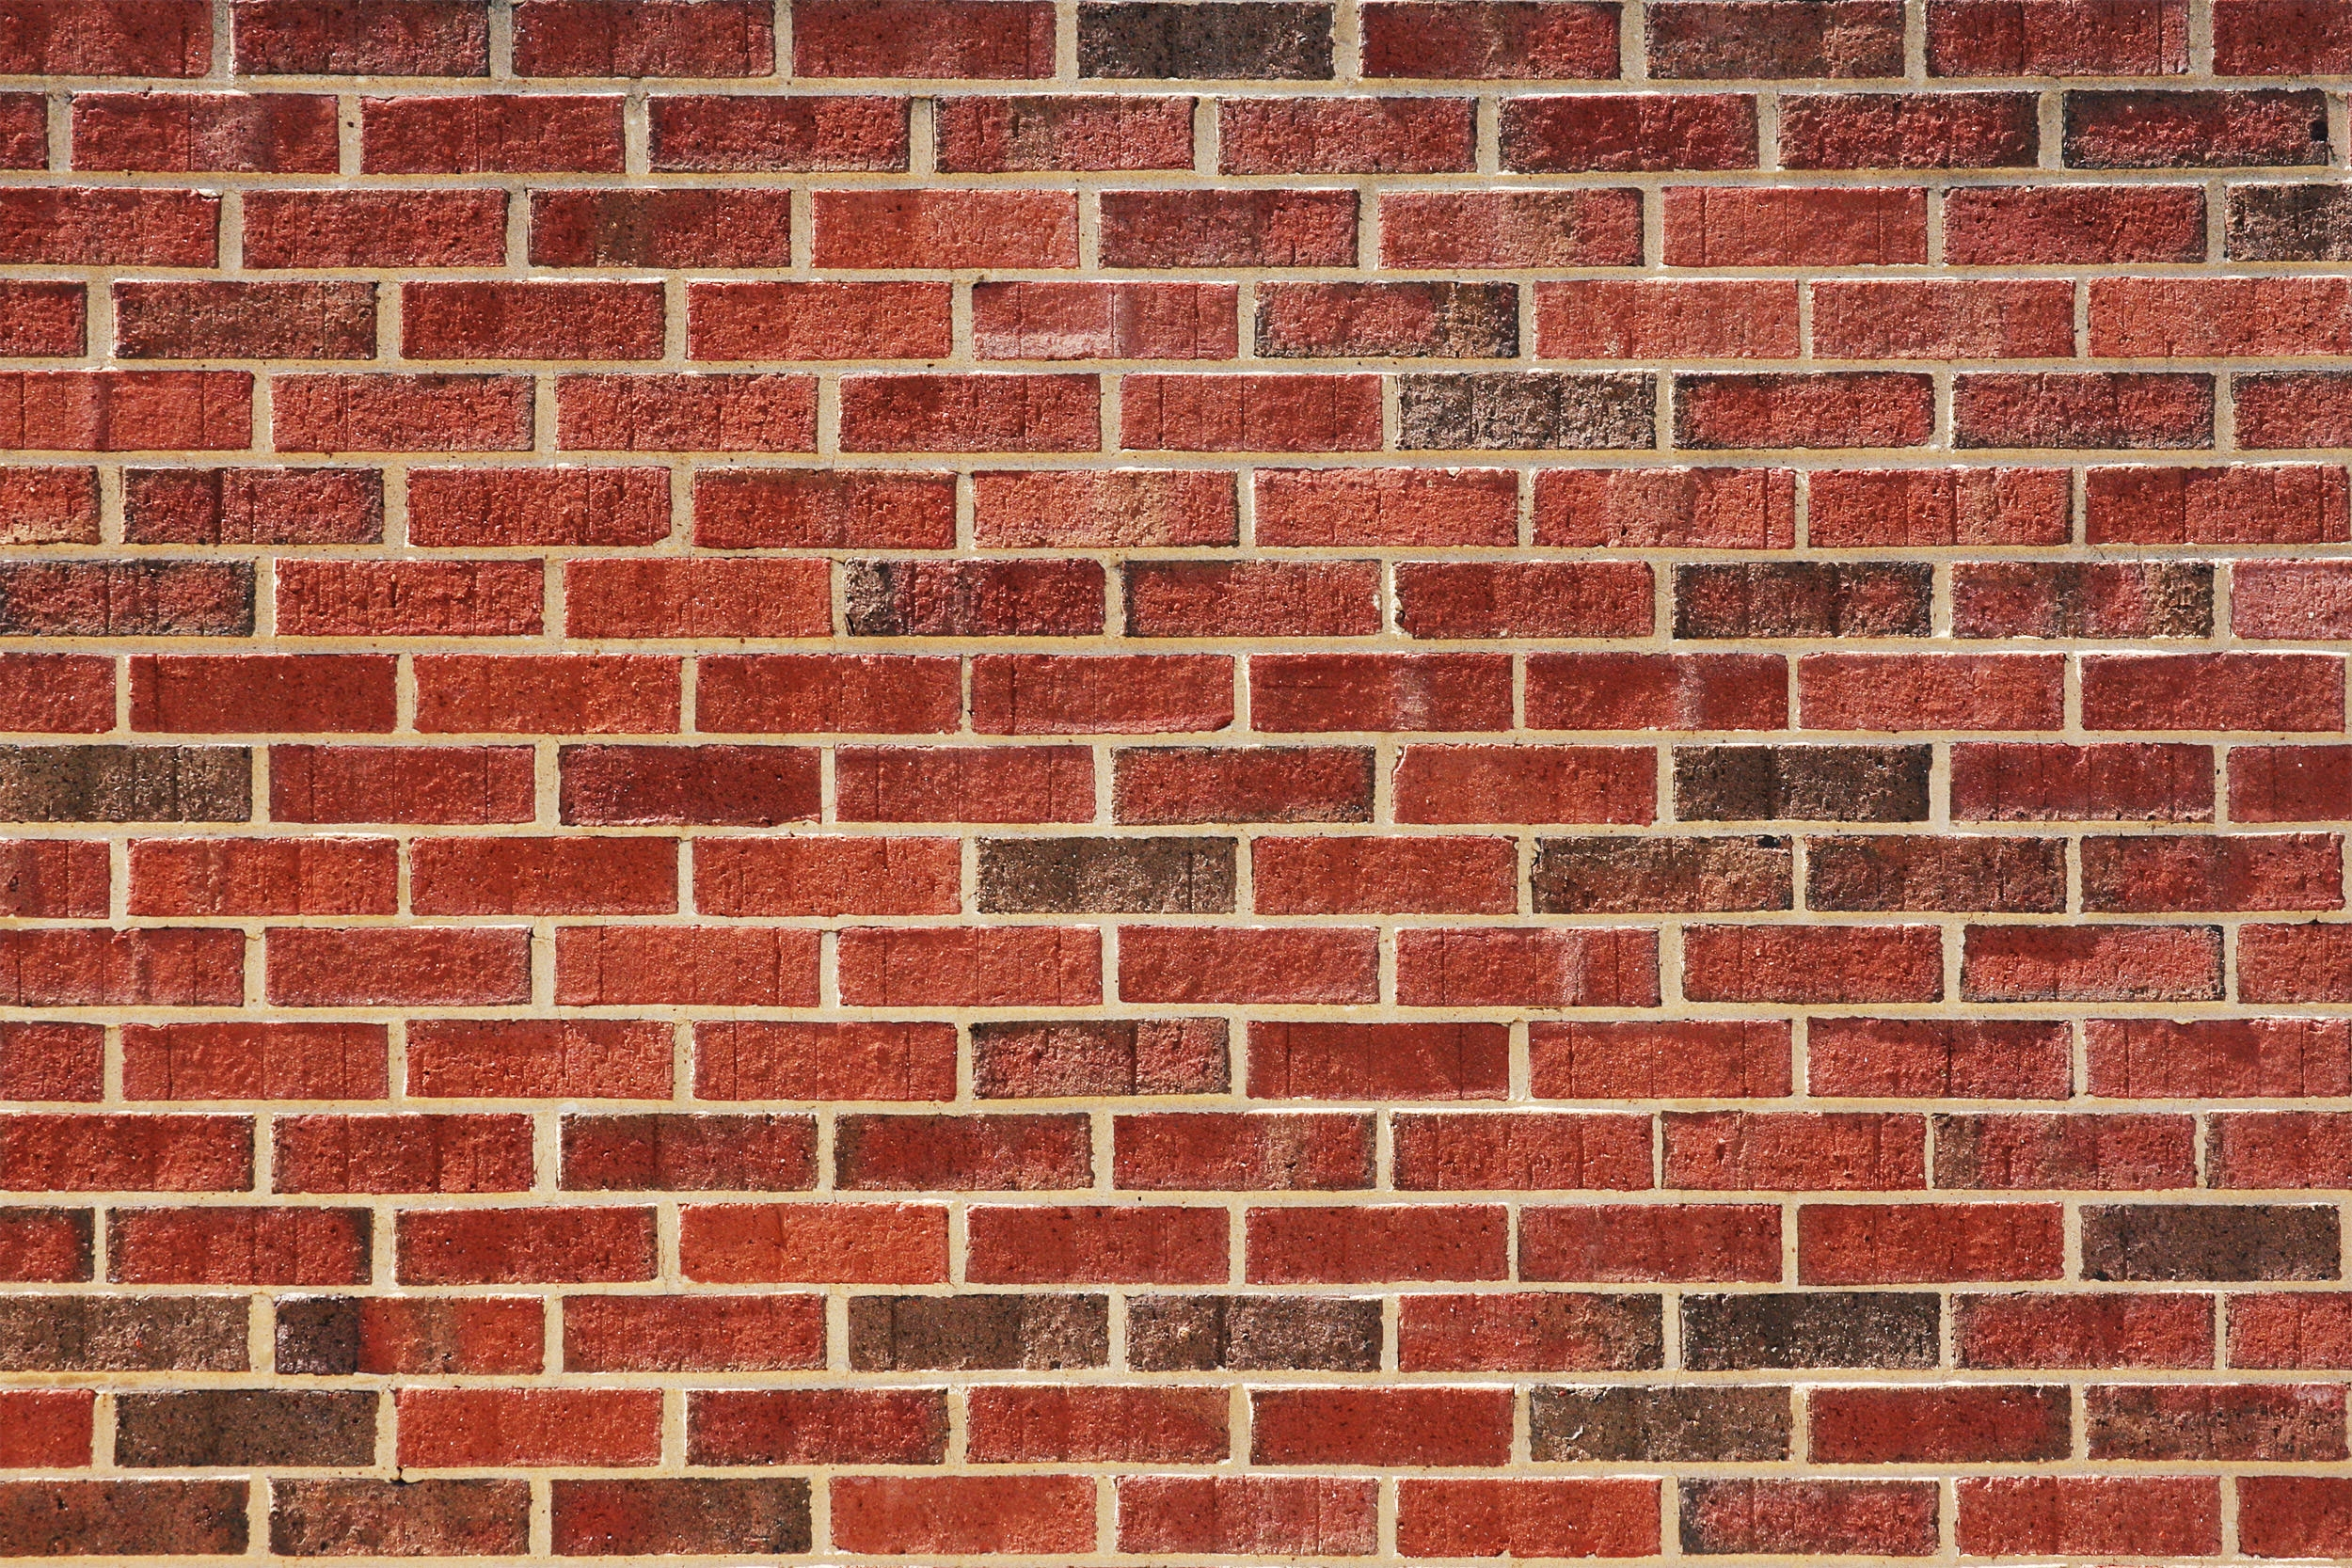 35 brick wall backgrounds psd vector eps jpg download for Wallpaper home texture